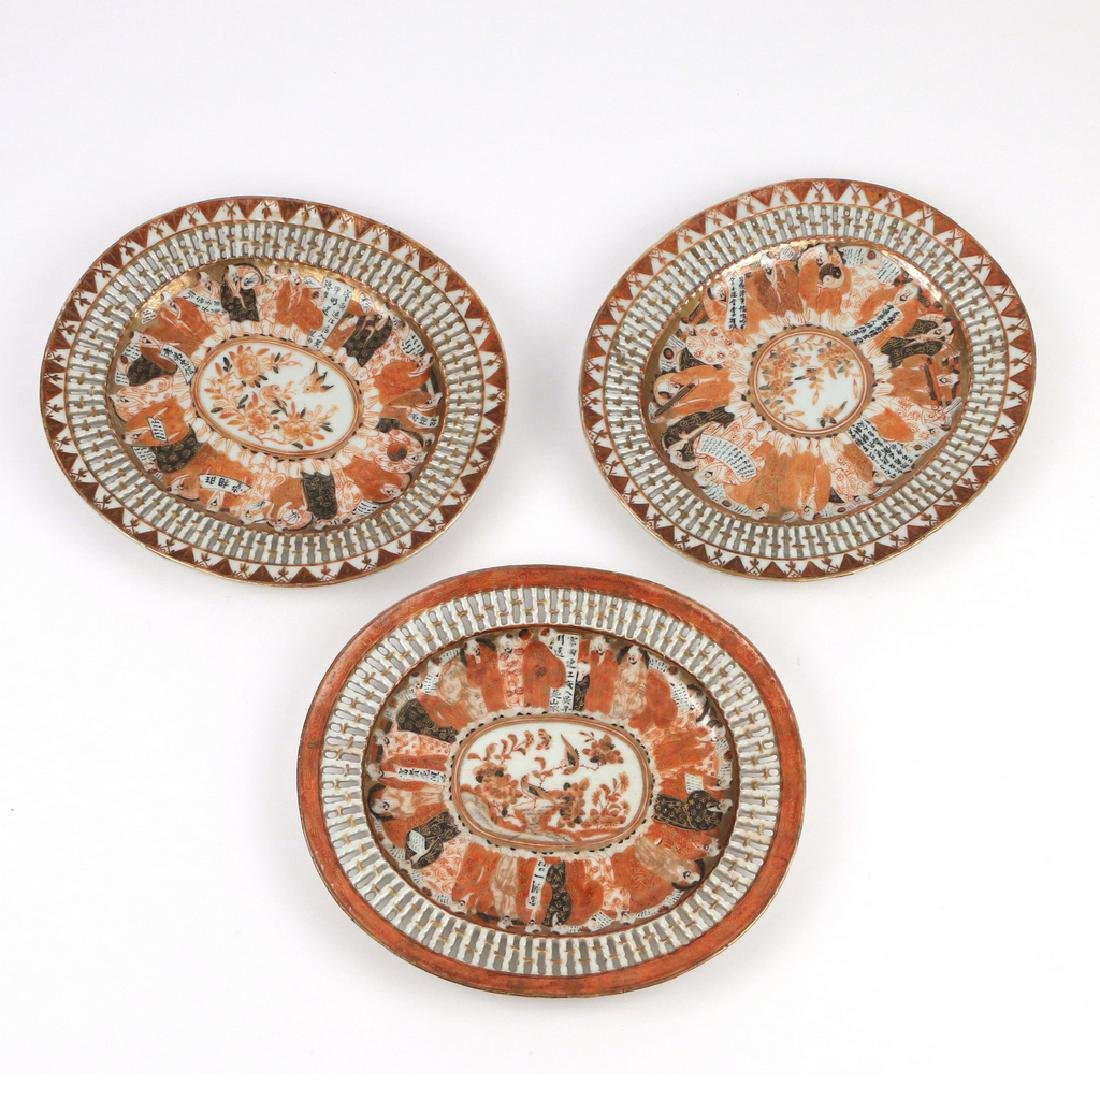 (5pc) PAIR RARE CHINESE EXPORT CHESTNUT BASKETS - 5